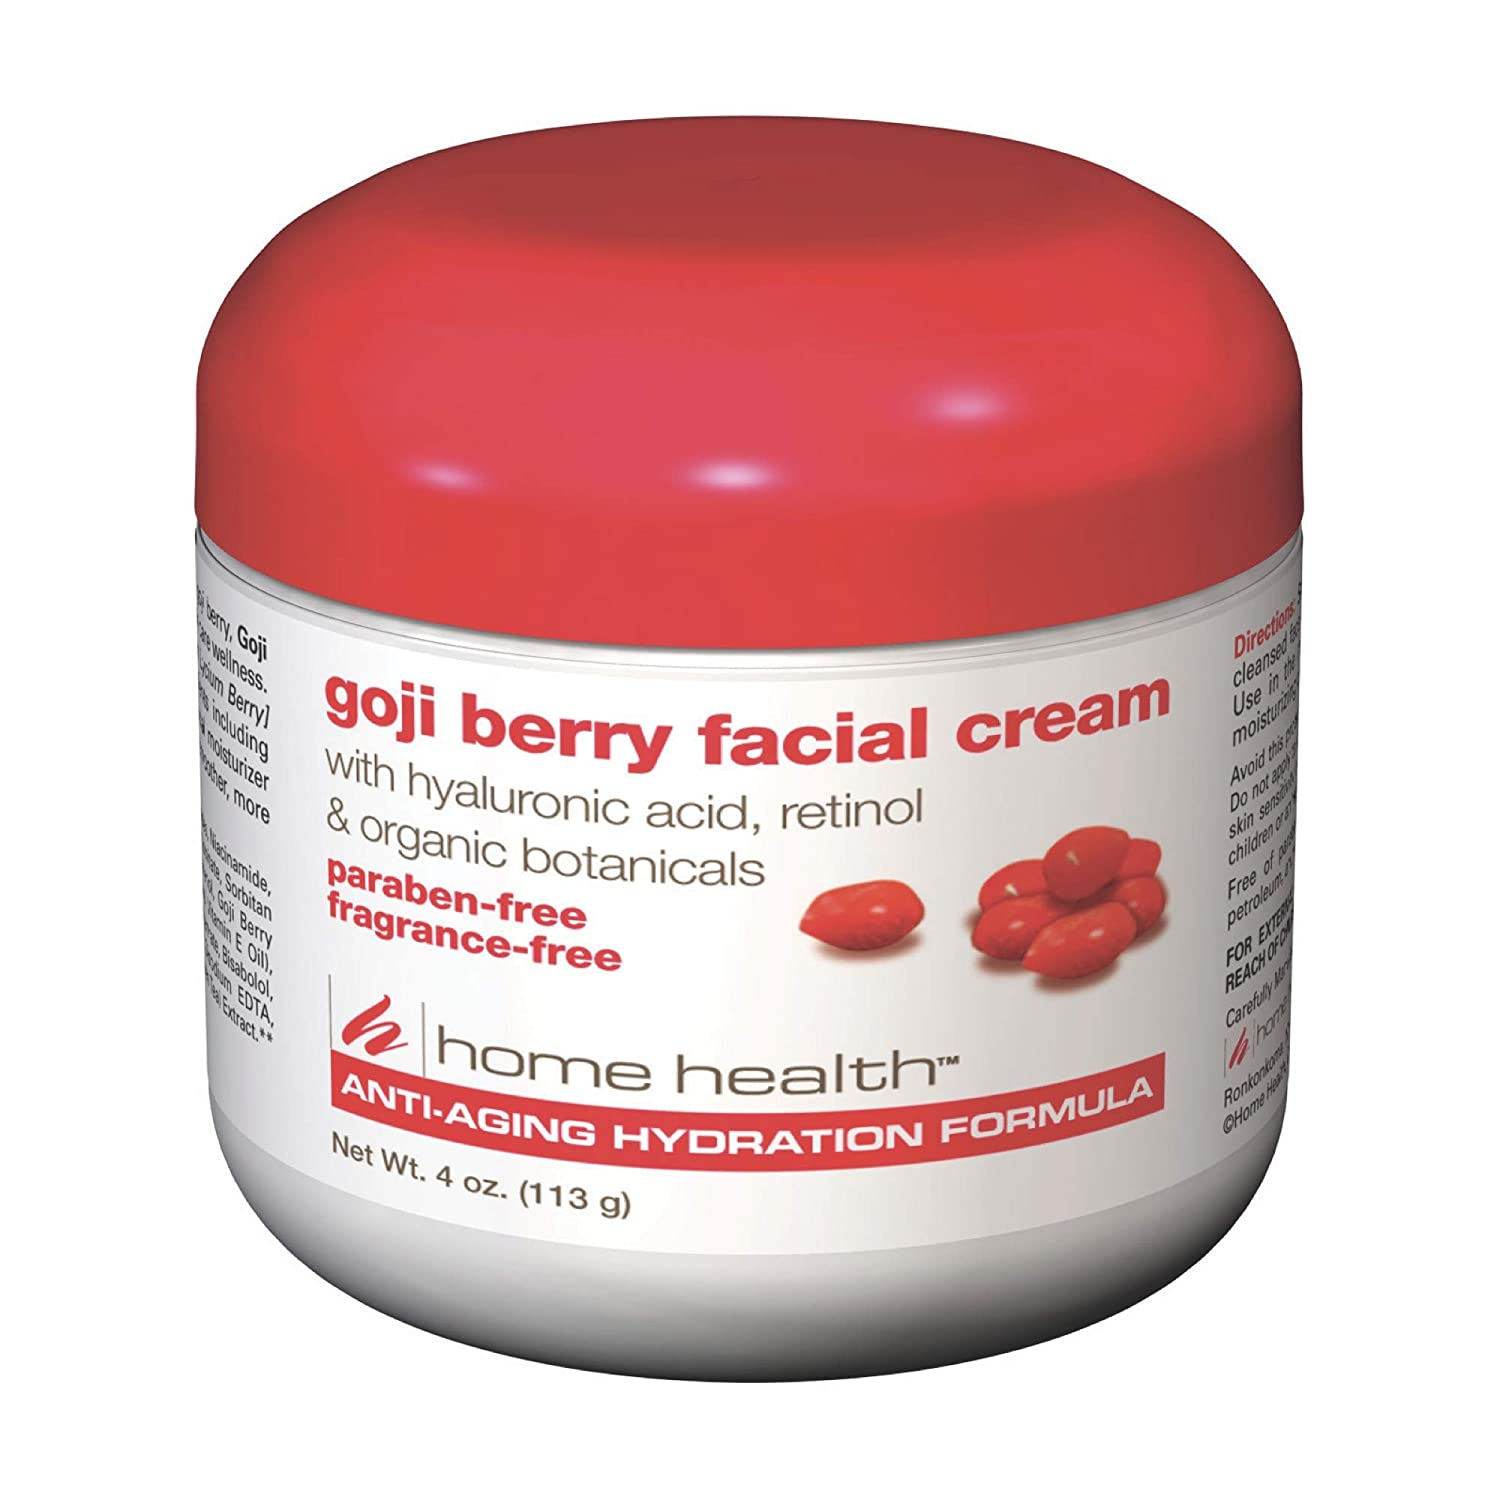 Home Health Goji Berry Facial Cream - 4 oz - Moisturizing & Anti-Aging Hydration Formula, Reduces Appearance of Wrinkles, Protects, Hydrates & Revitalizes Skin - Paraben-Free, Fragrance-Free, Vegan